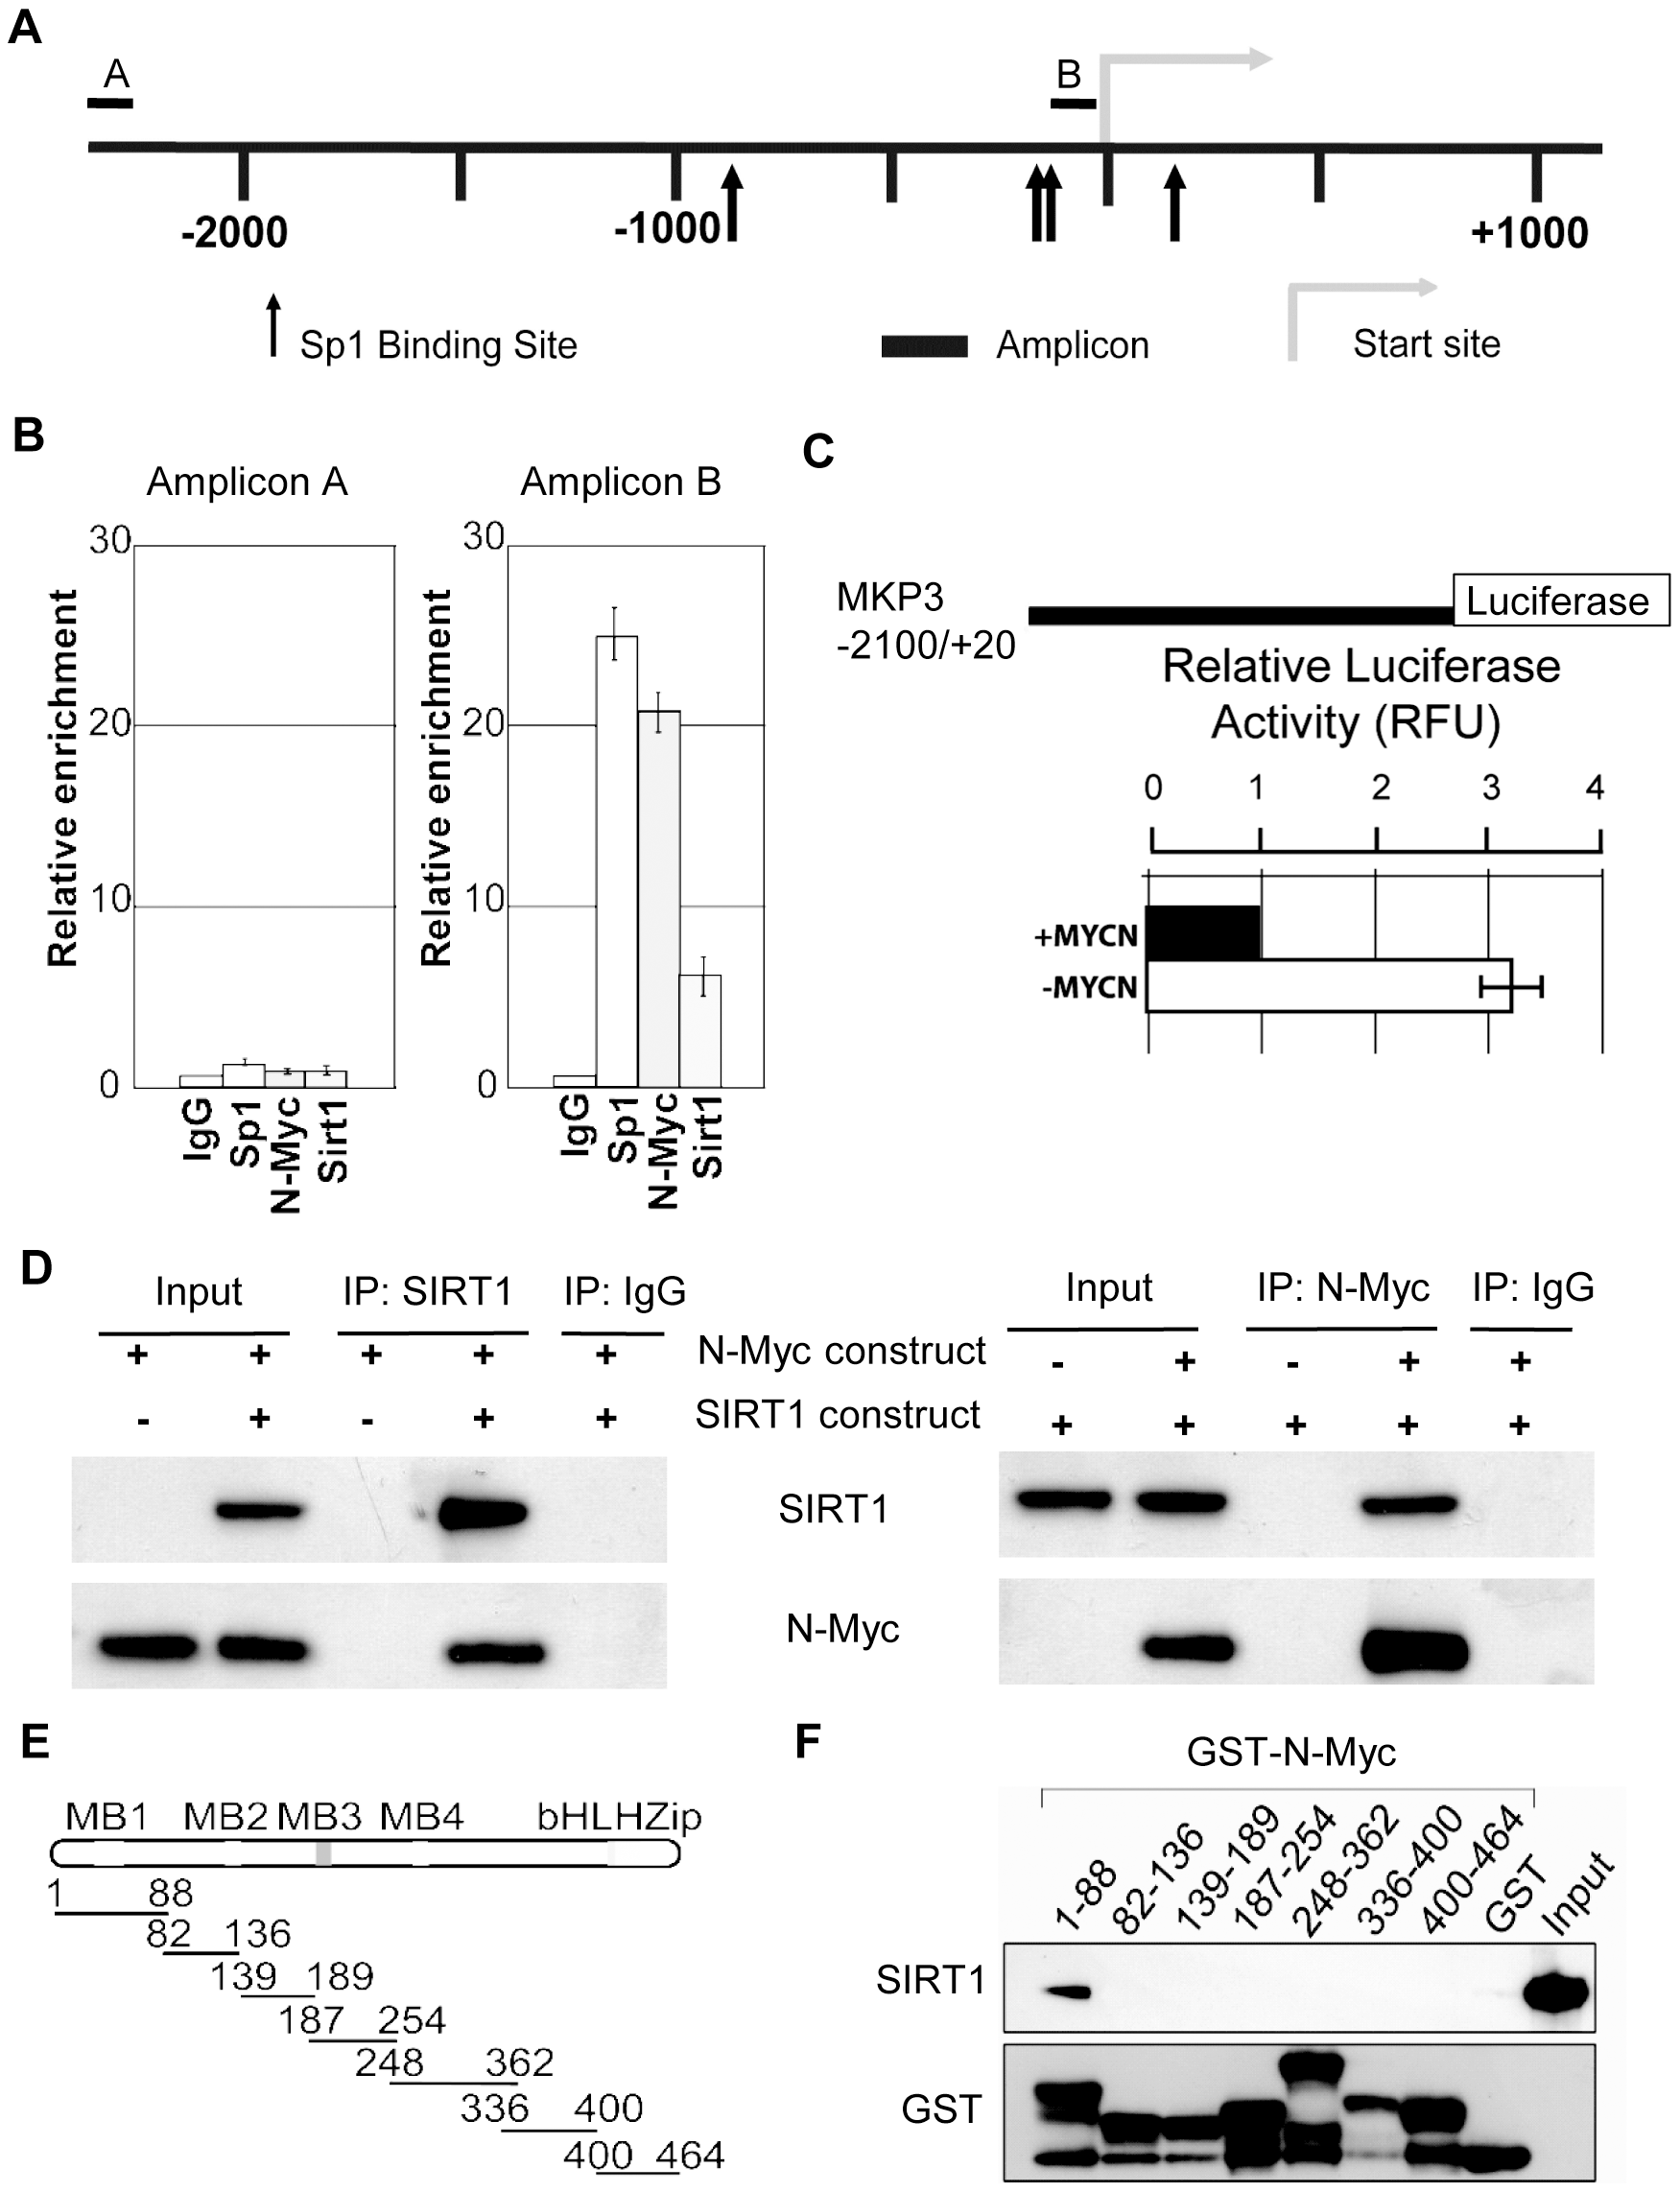 SIRT1 and N-Myc repress MKP3 gene transcription by forming a transcriptional repressor complex at MKP3 gene core promoter.